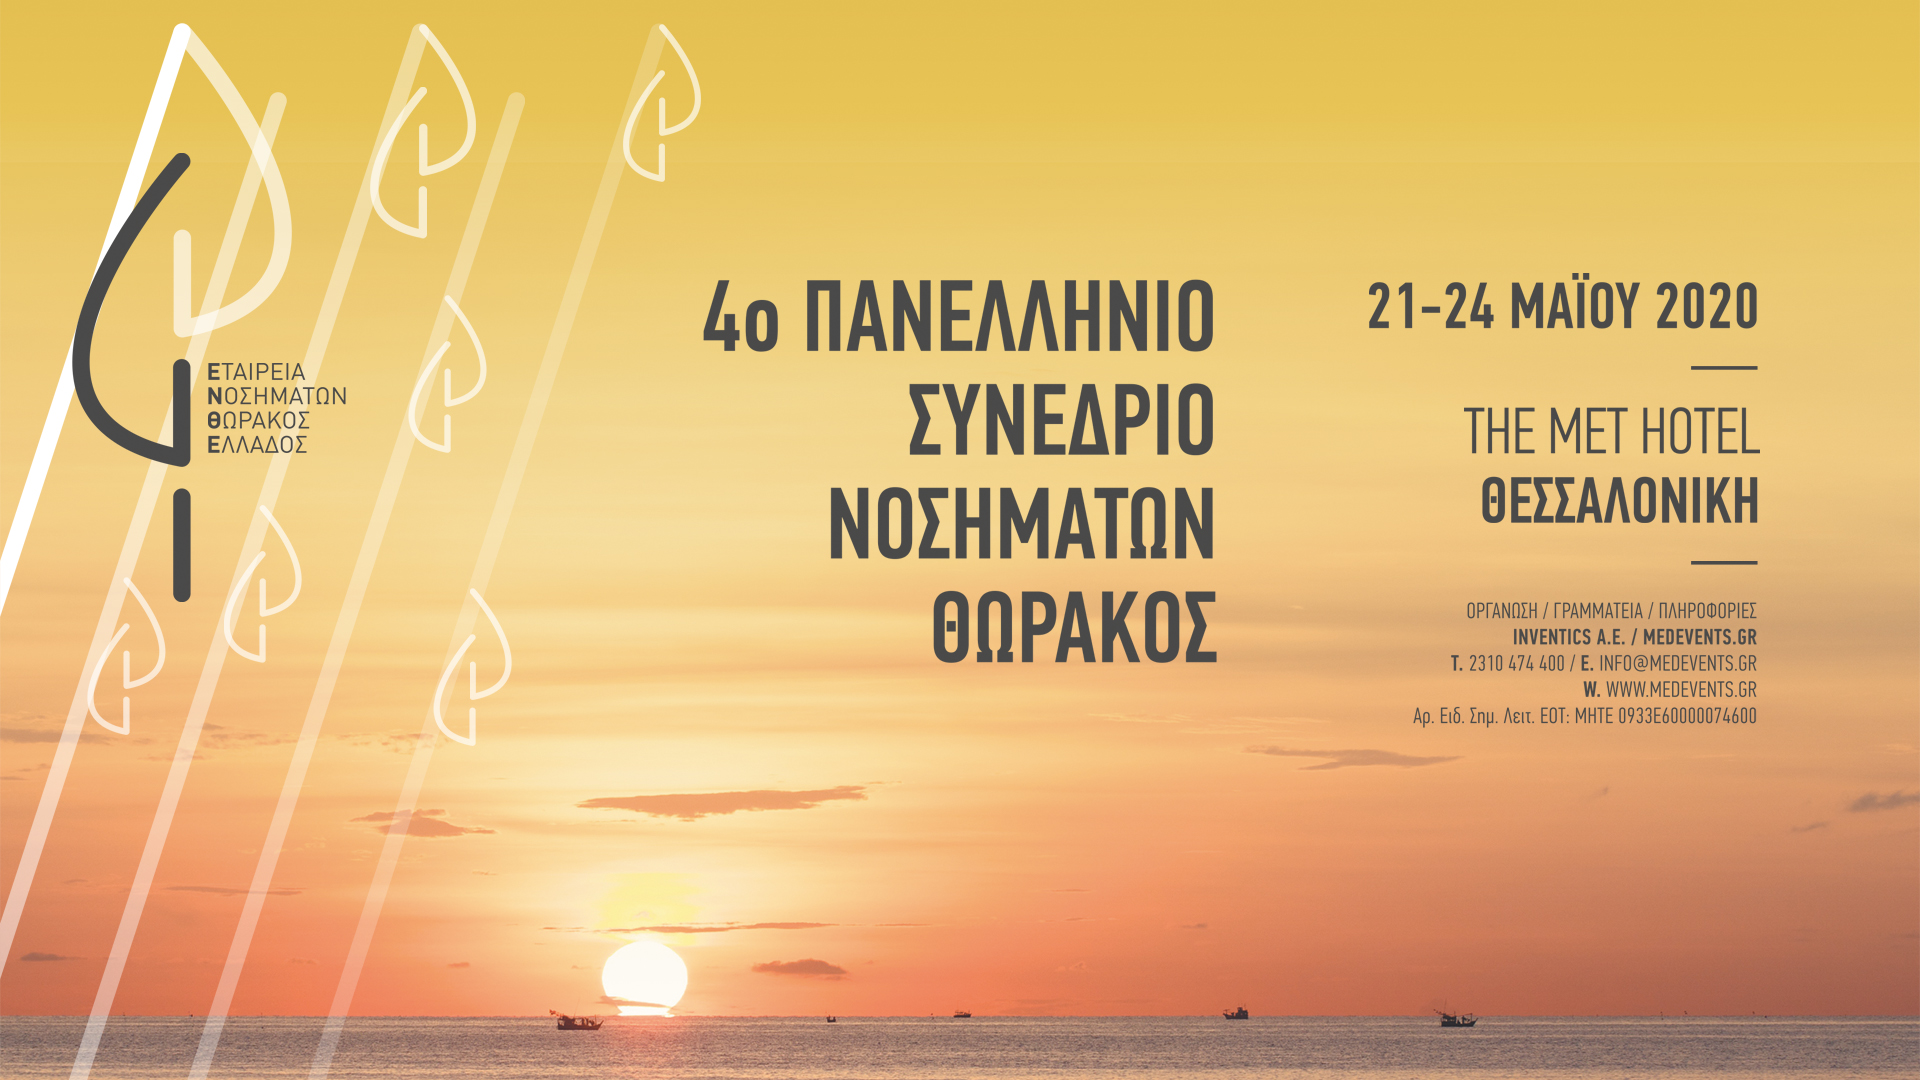 4th Panhellenic Conference of Chest Diseases